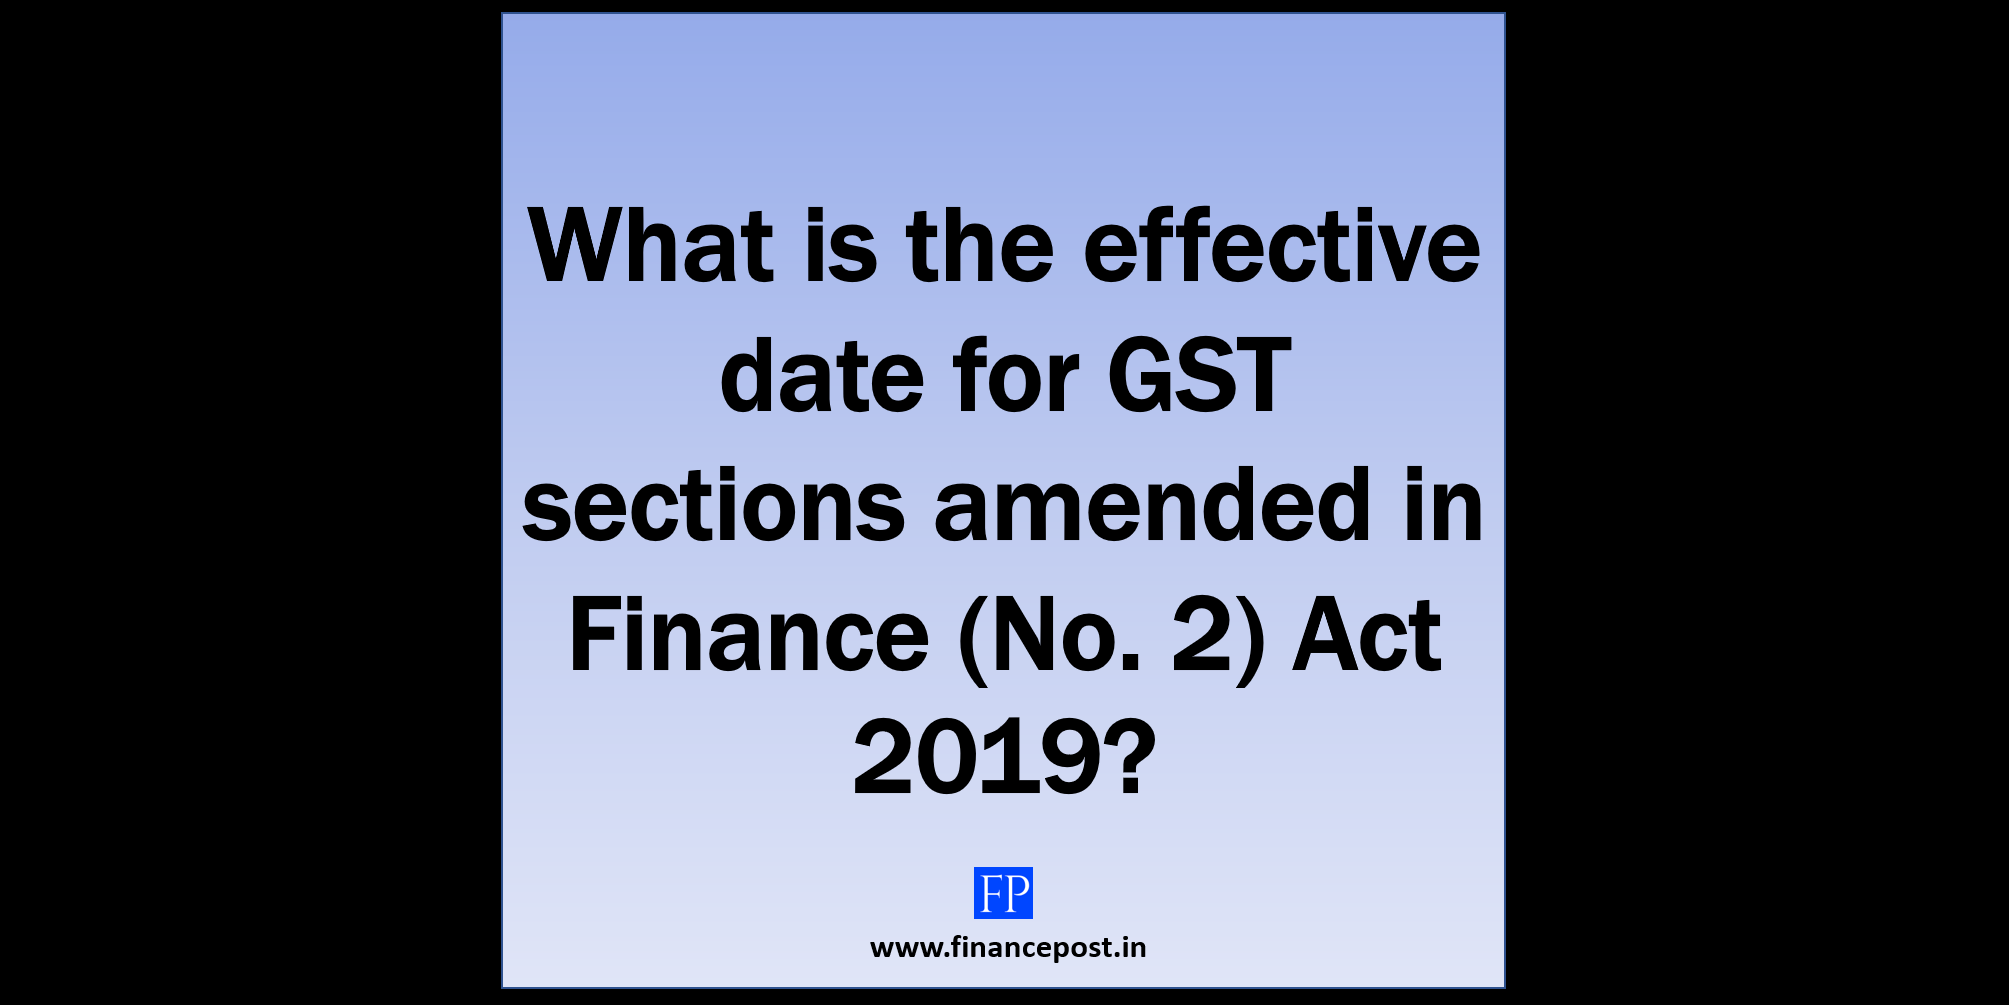 What is the effective date for GST sections amended in Finance (No. 2) Act 2019?